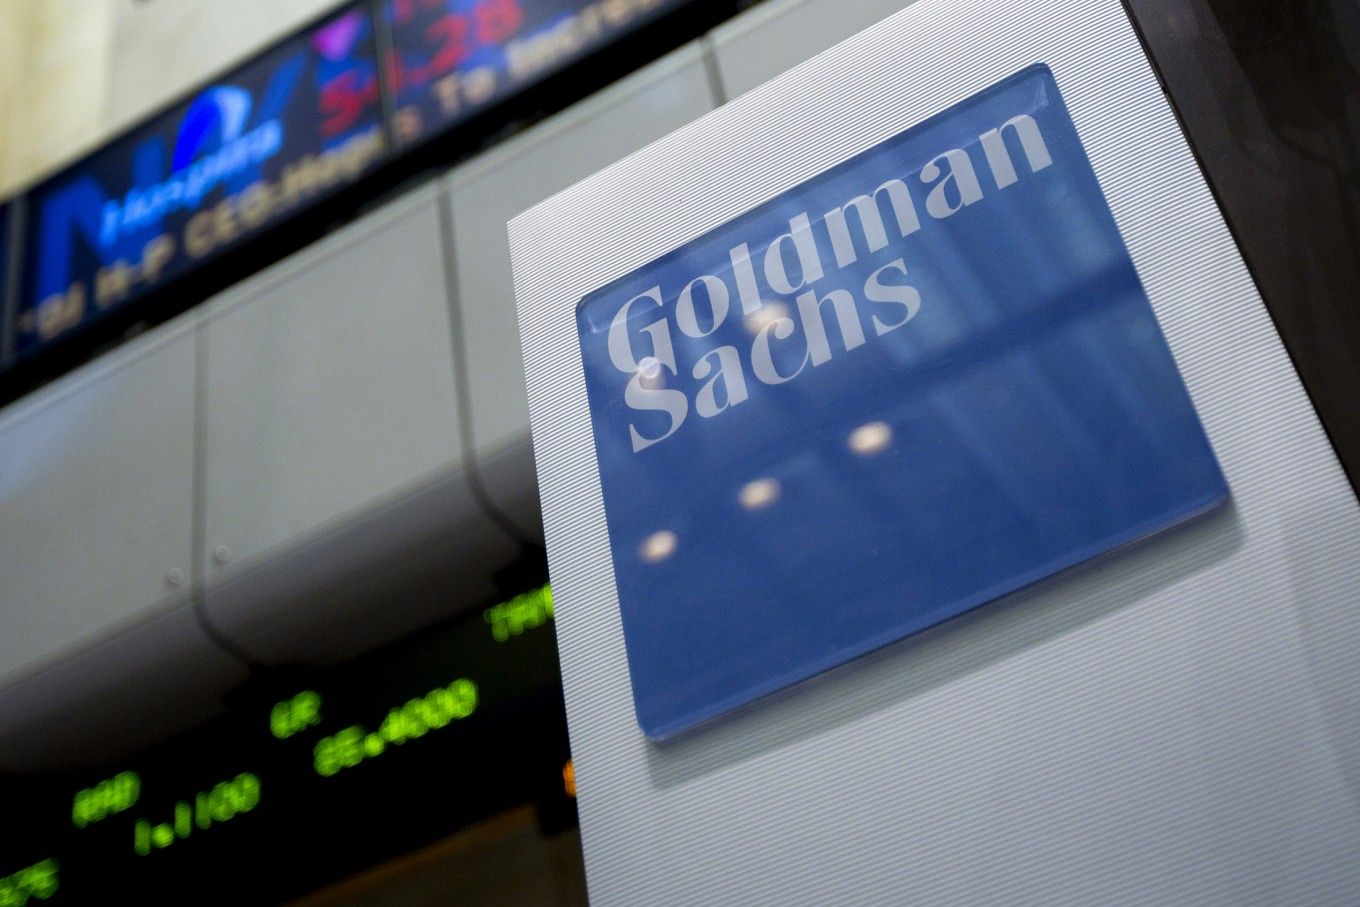 Goldman says former Malaysia govt lied, after charges filed